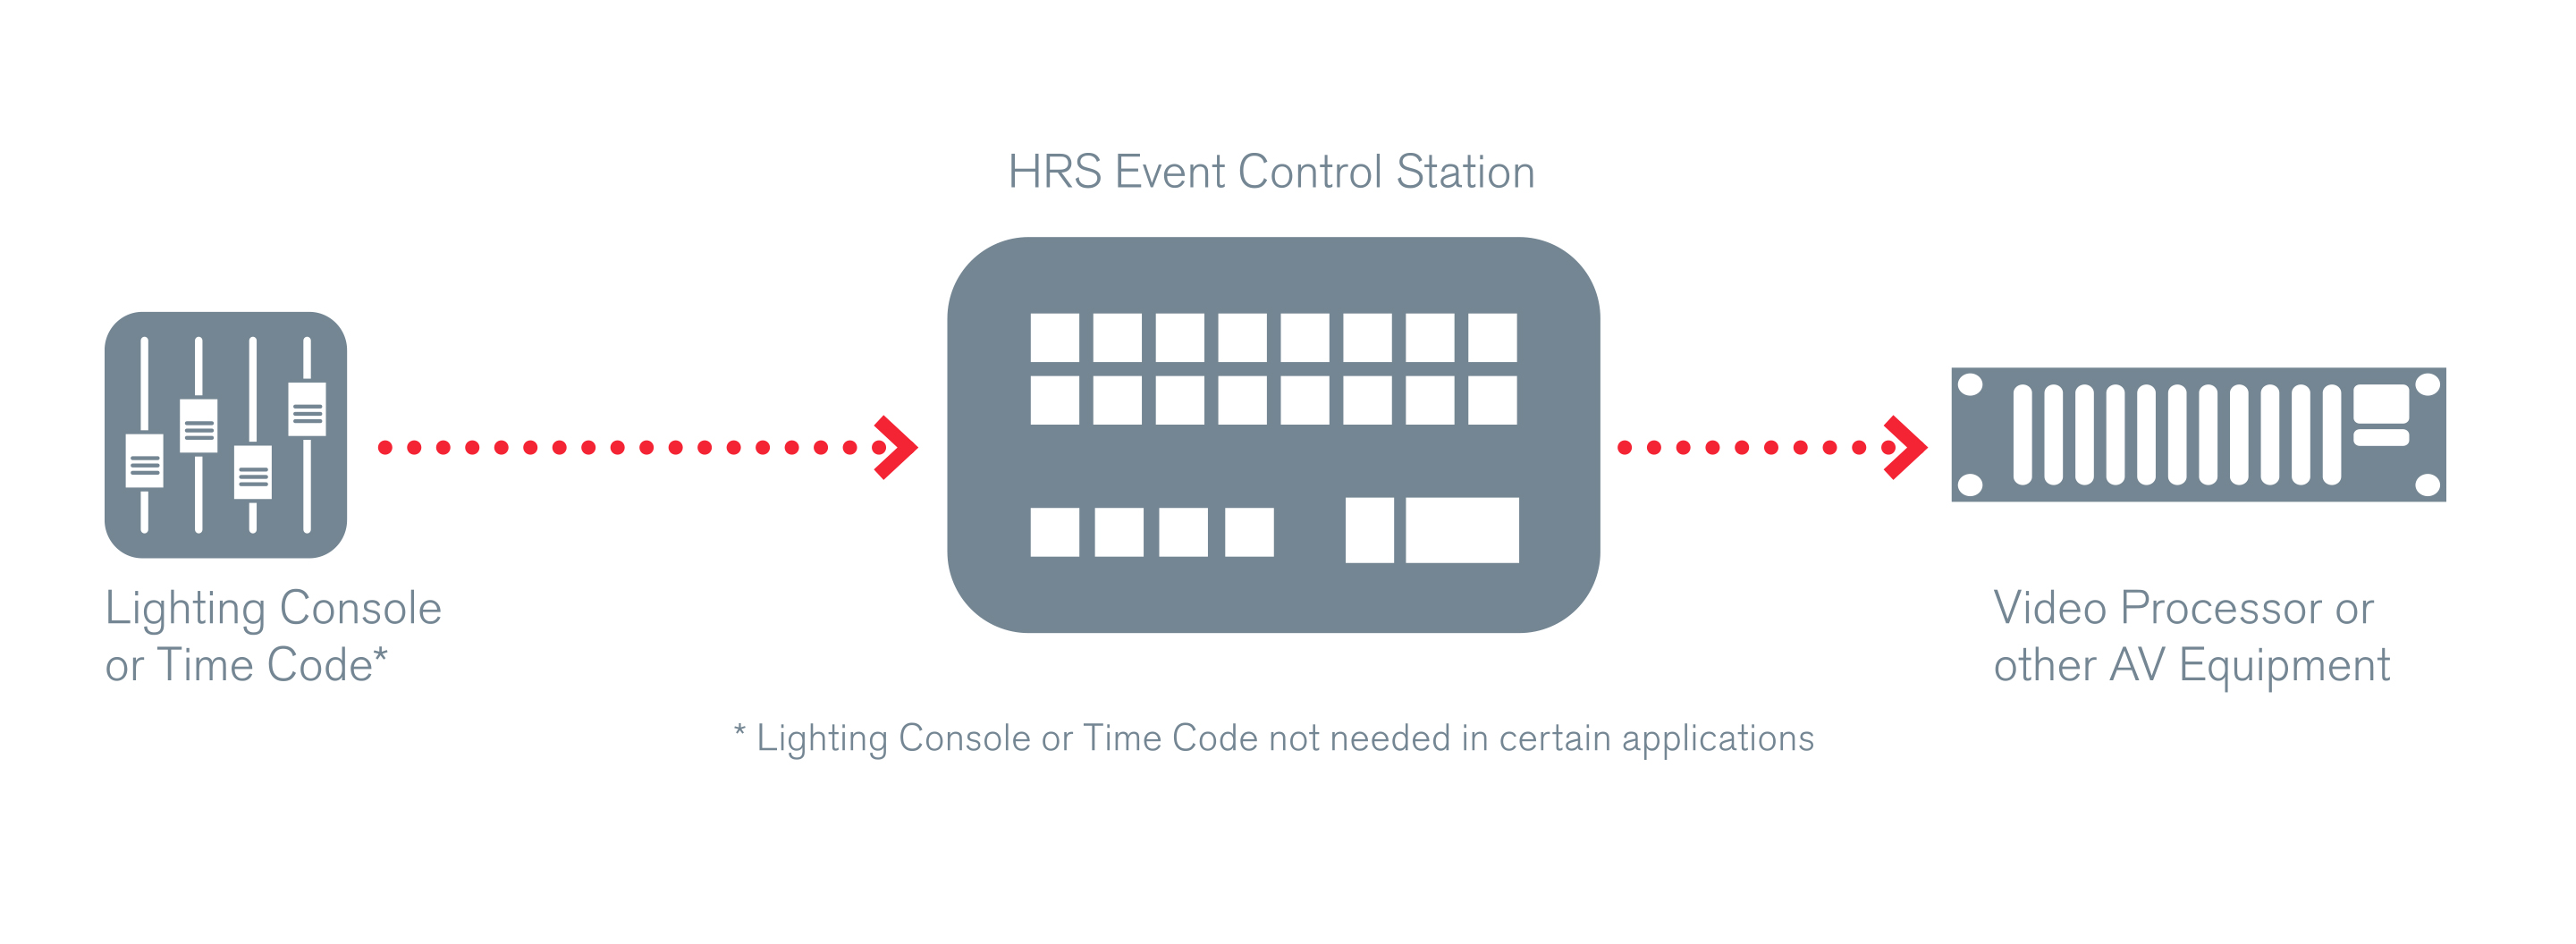 Event Control Station – HRS Control